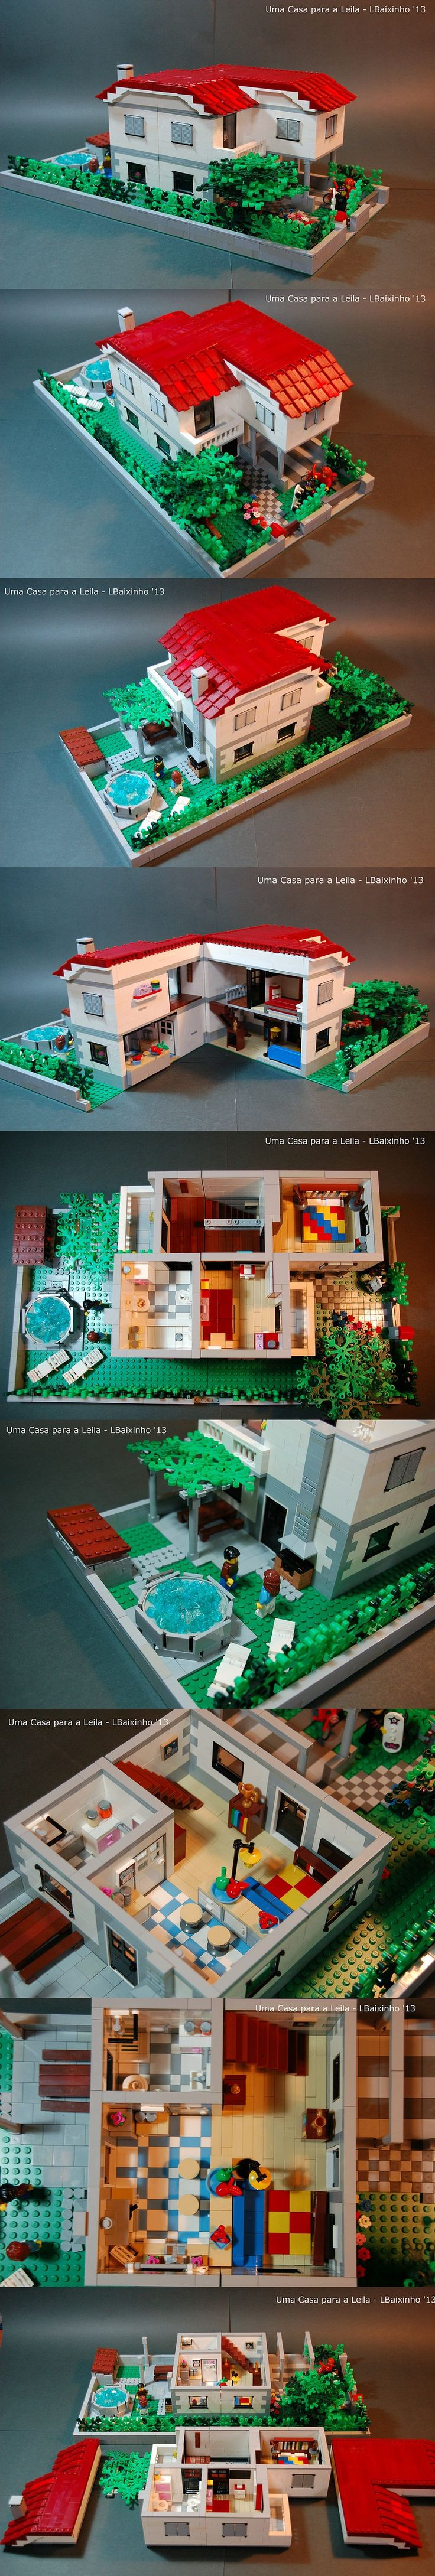 Uma Casa para a Leila (An House to Leila) is a MOC that I made to my daughter. She decided what she wanted while I was building. | Follow me on G+: https://plus.google.com/u/0/111240276908724507776/posts